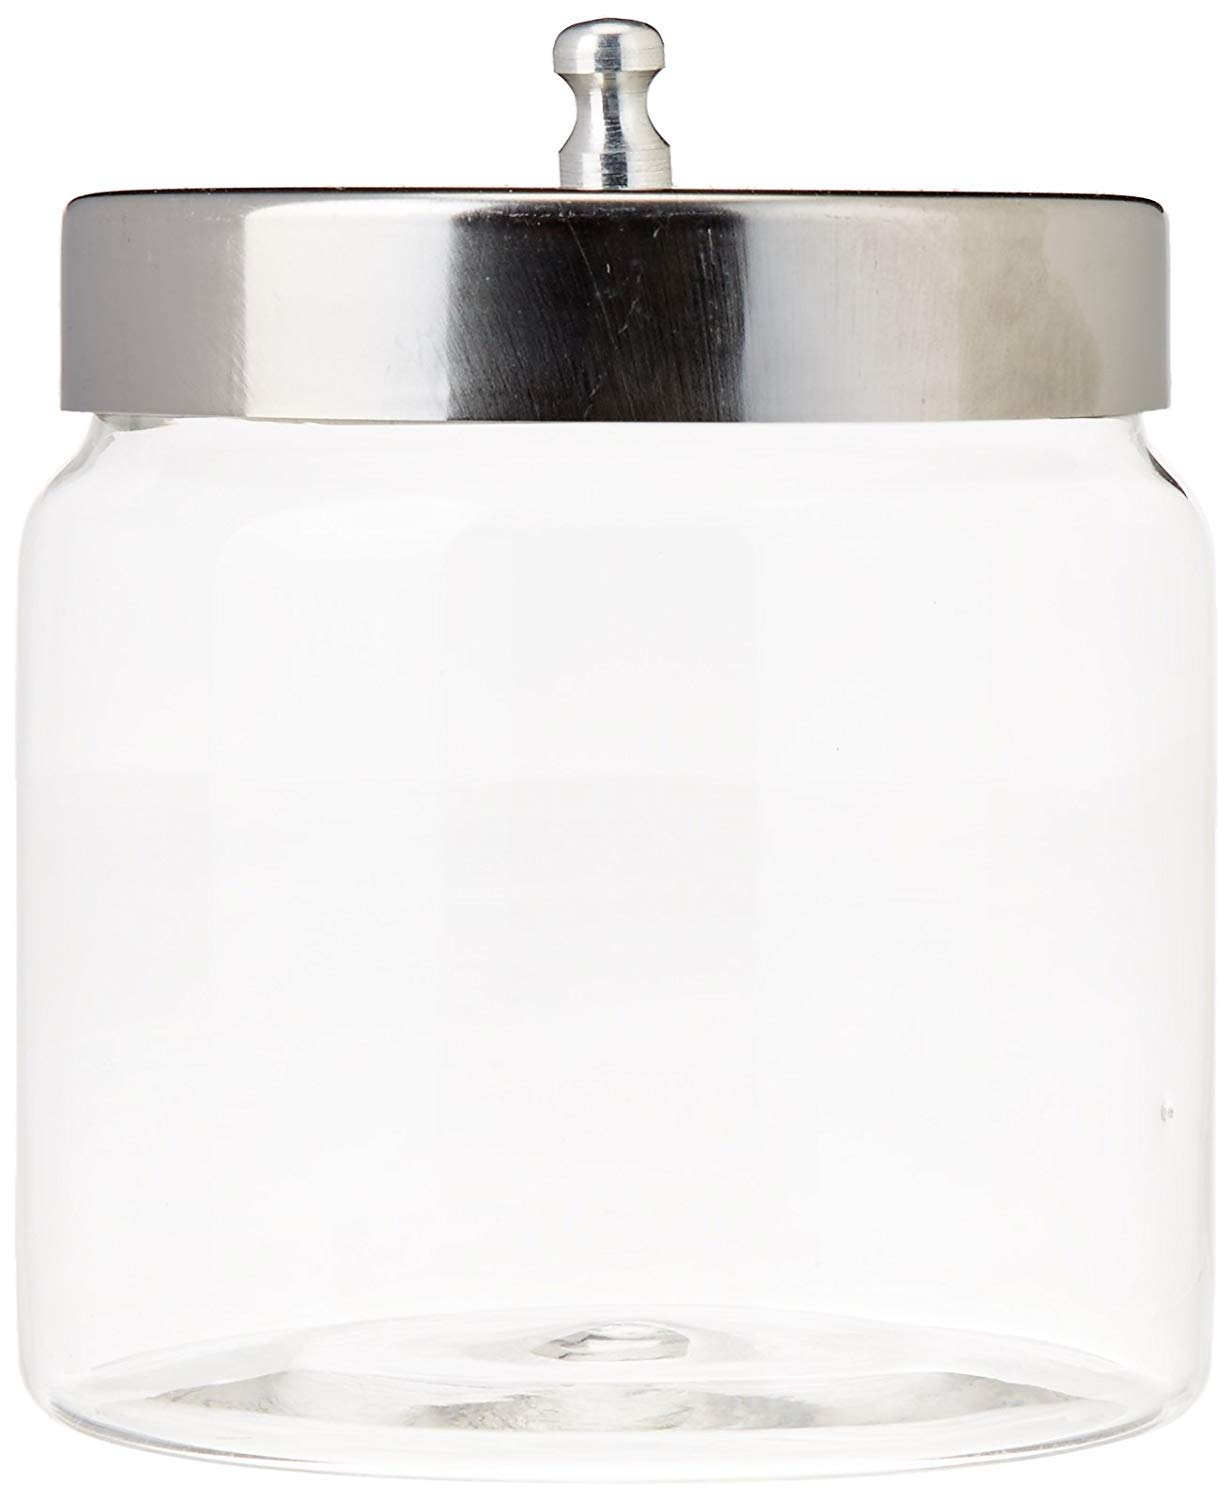 """Grafco Pyrex Glass Storage Jars with Aluminum Lids, 3x3\"""", 3460P (Pack of 12)"""